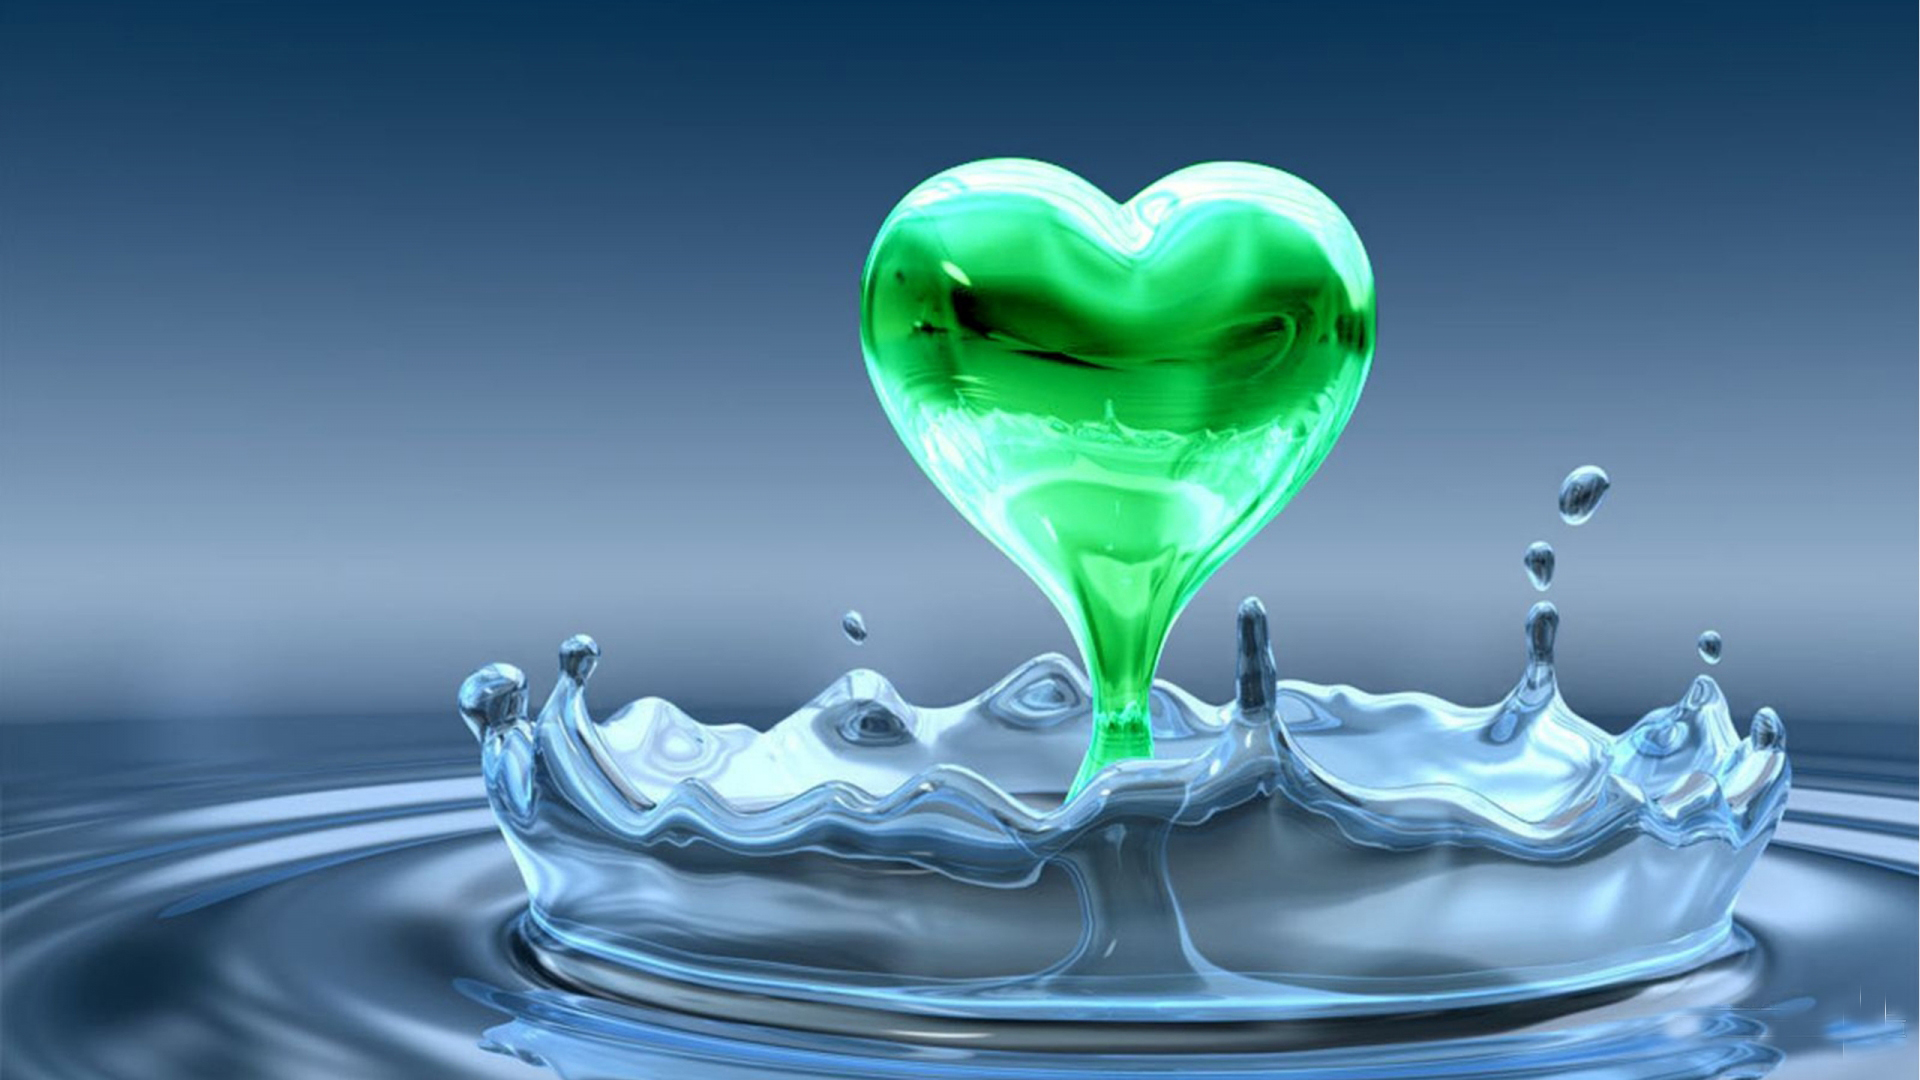 wallpaper.wiki-great-green-shade-3d-heart-hd-wallpaper-free-download